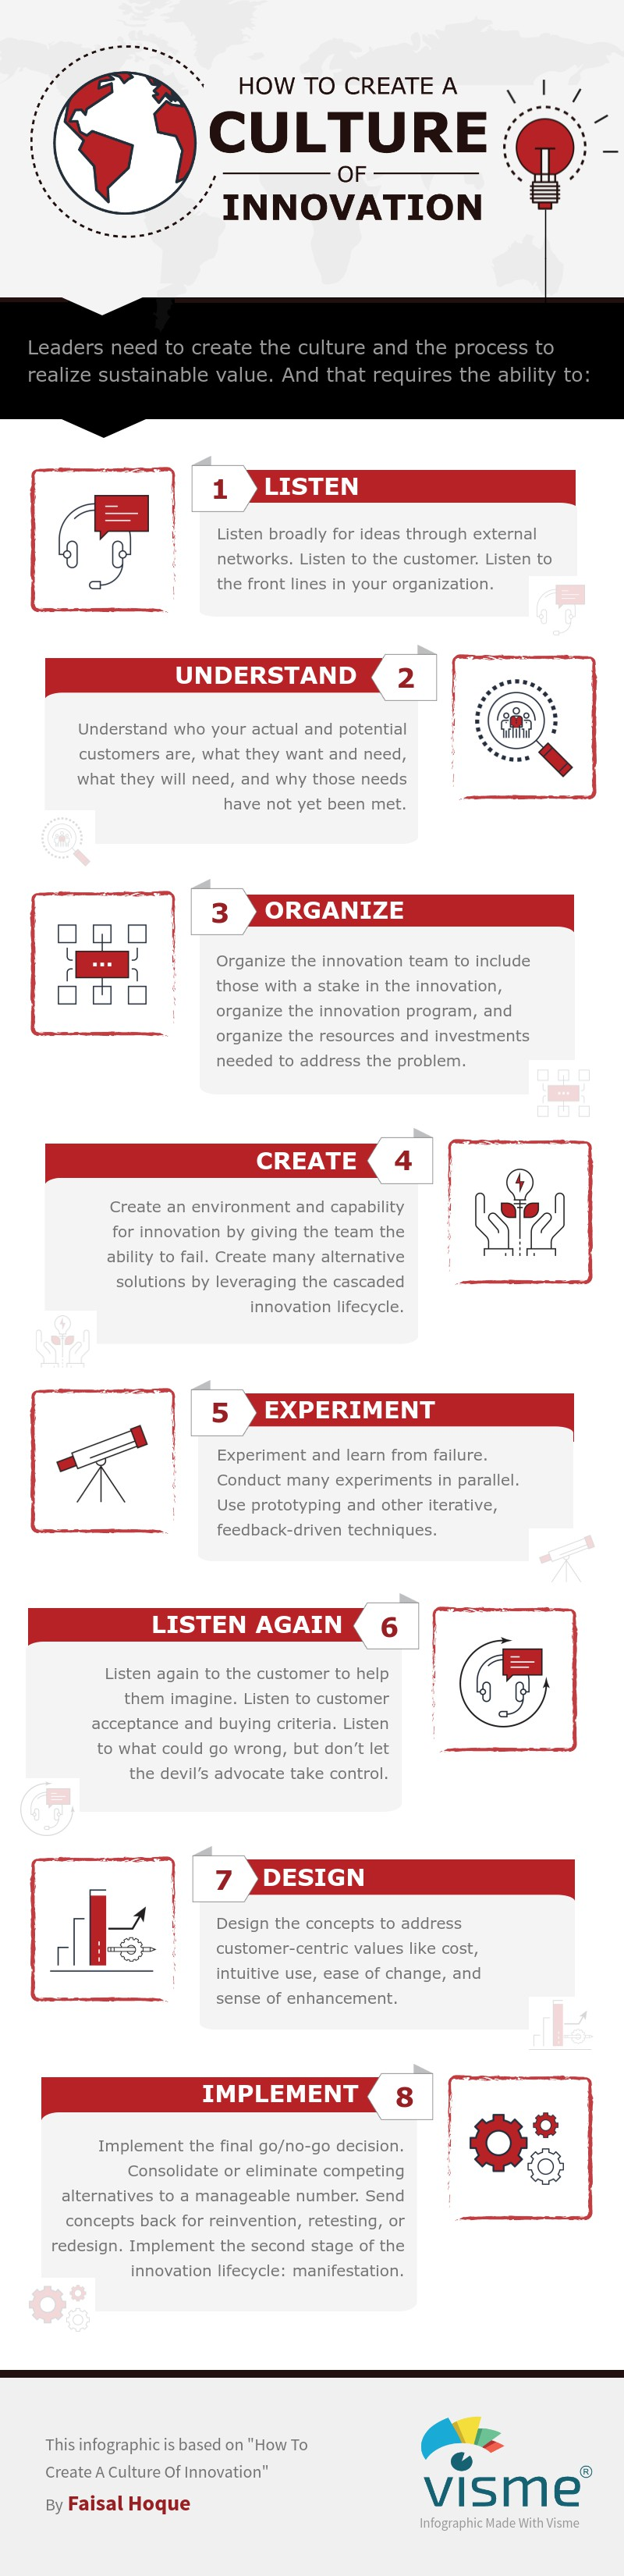 how-to-create-a-culture-of-innovation